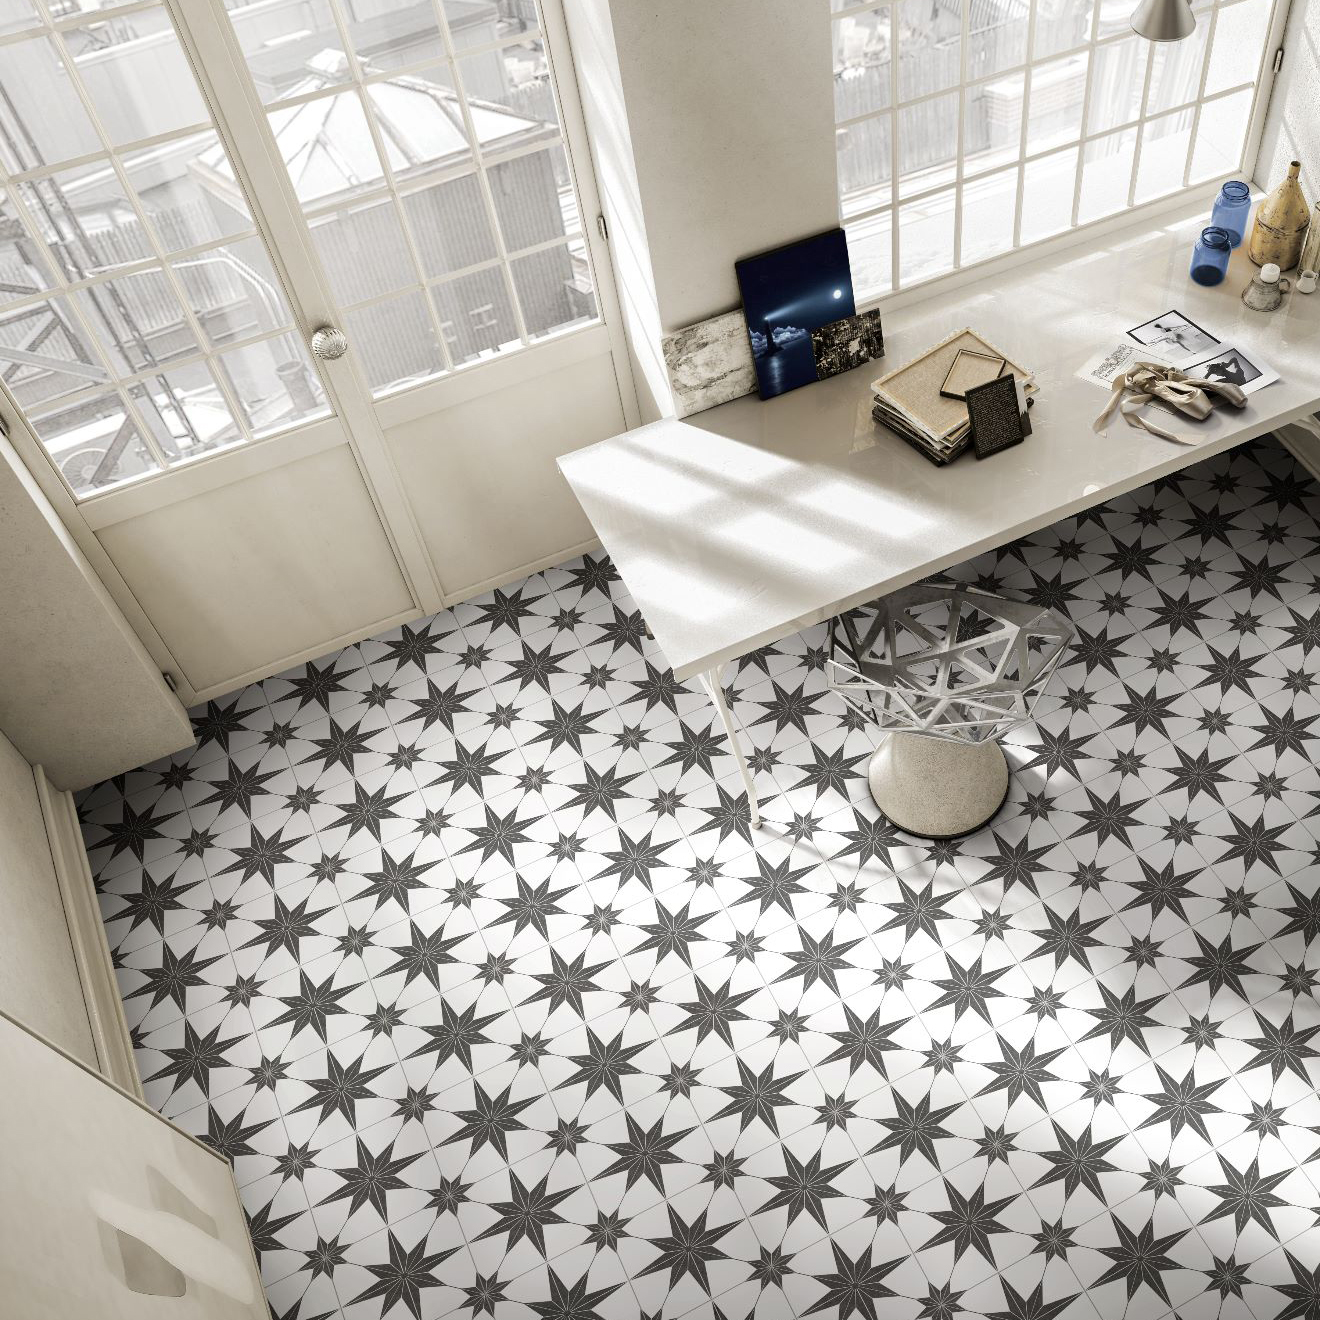 Stella Nero Porcelain Tiles